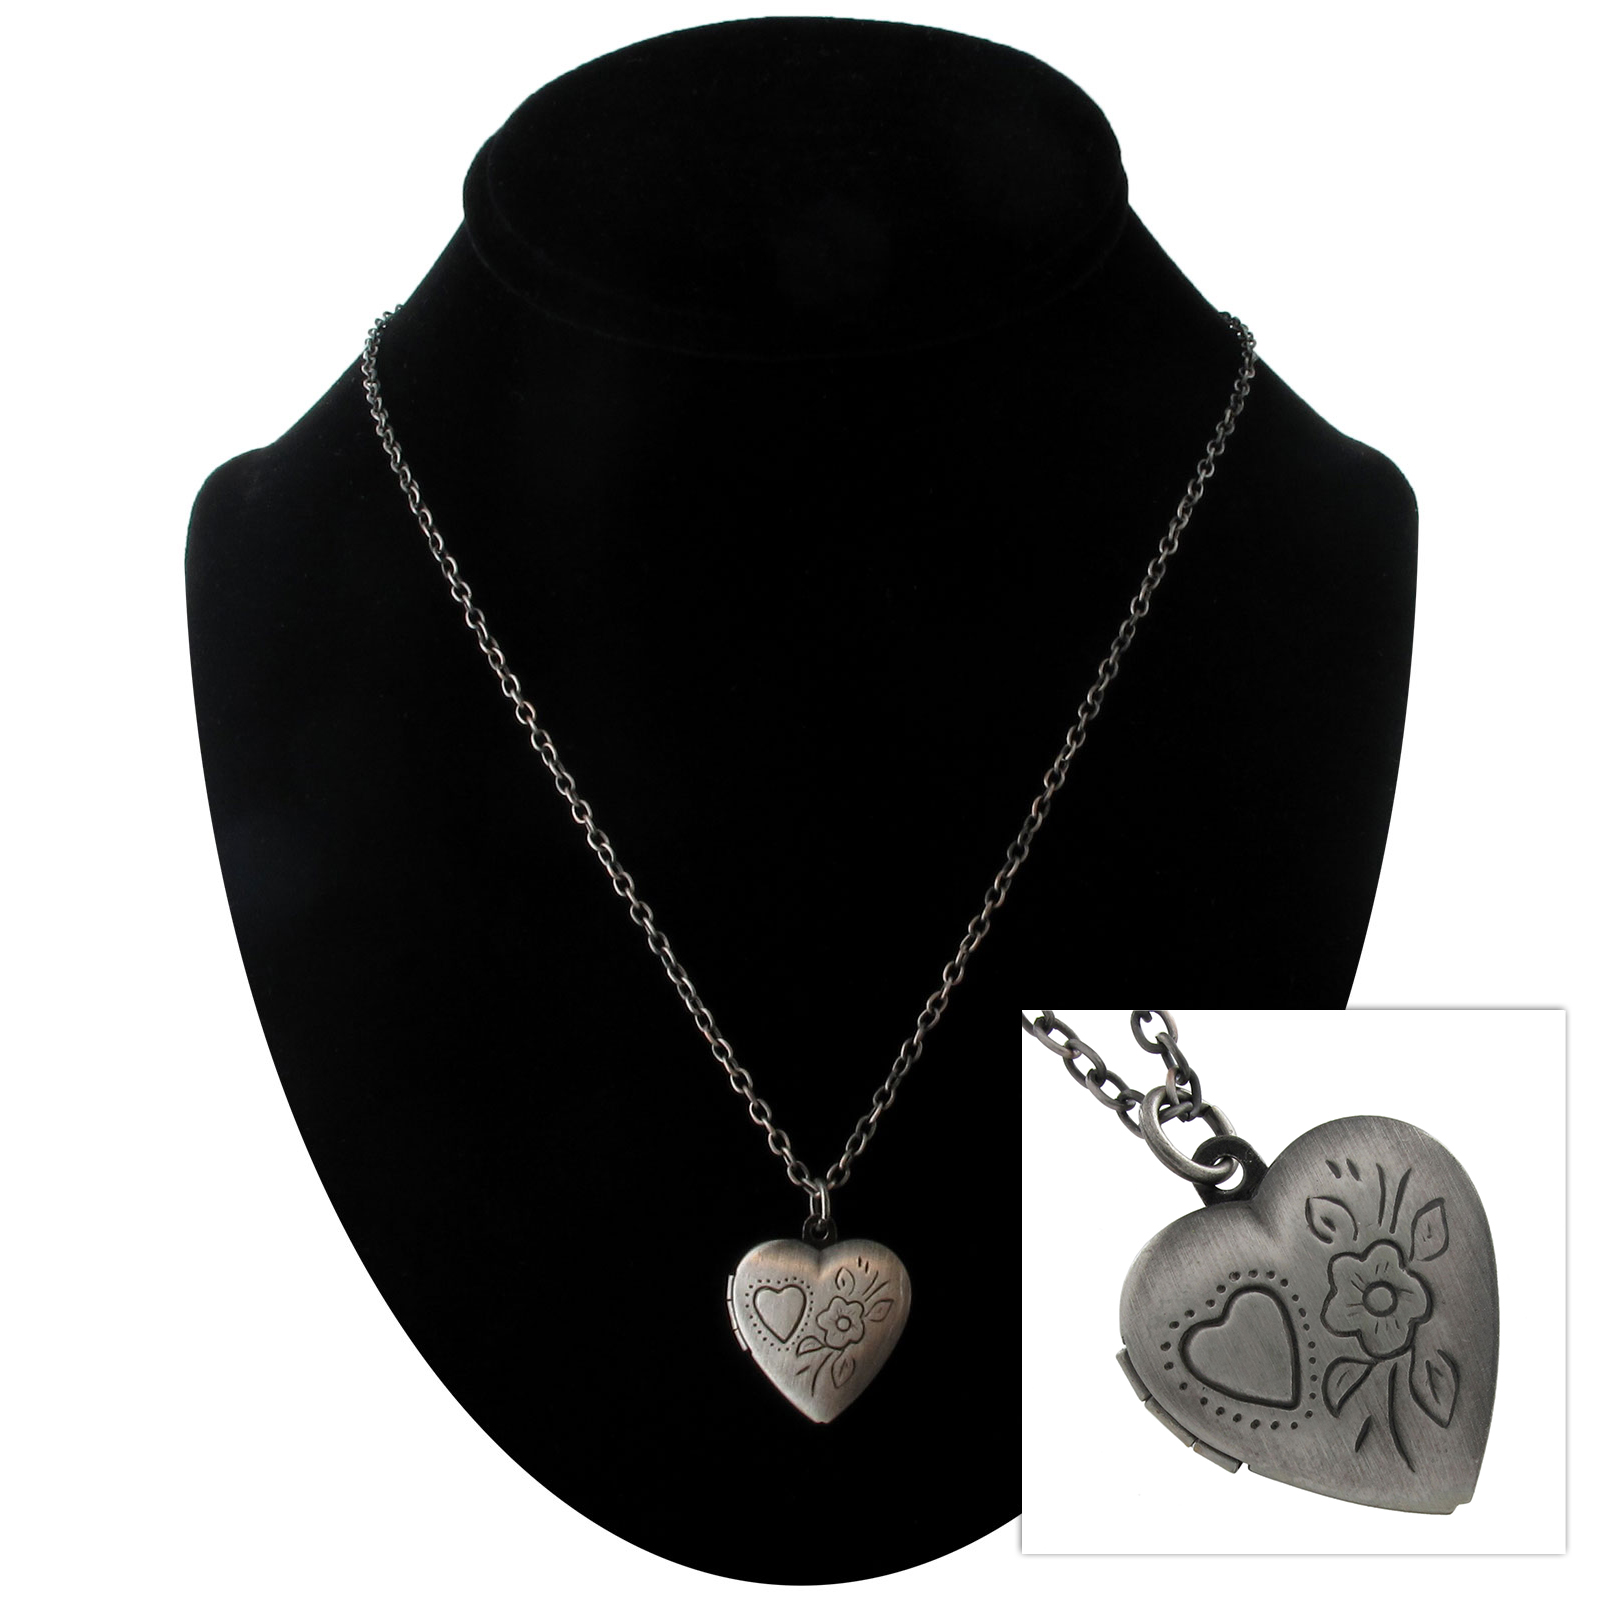 Burnished Silver Tone Heart Photo Locket Pendant Necklace